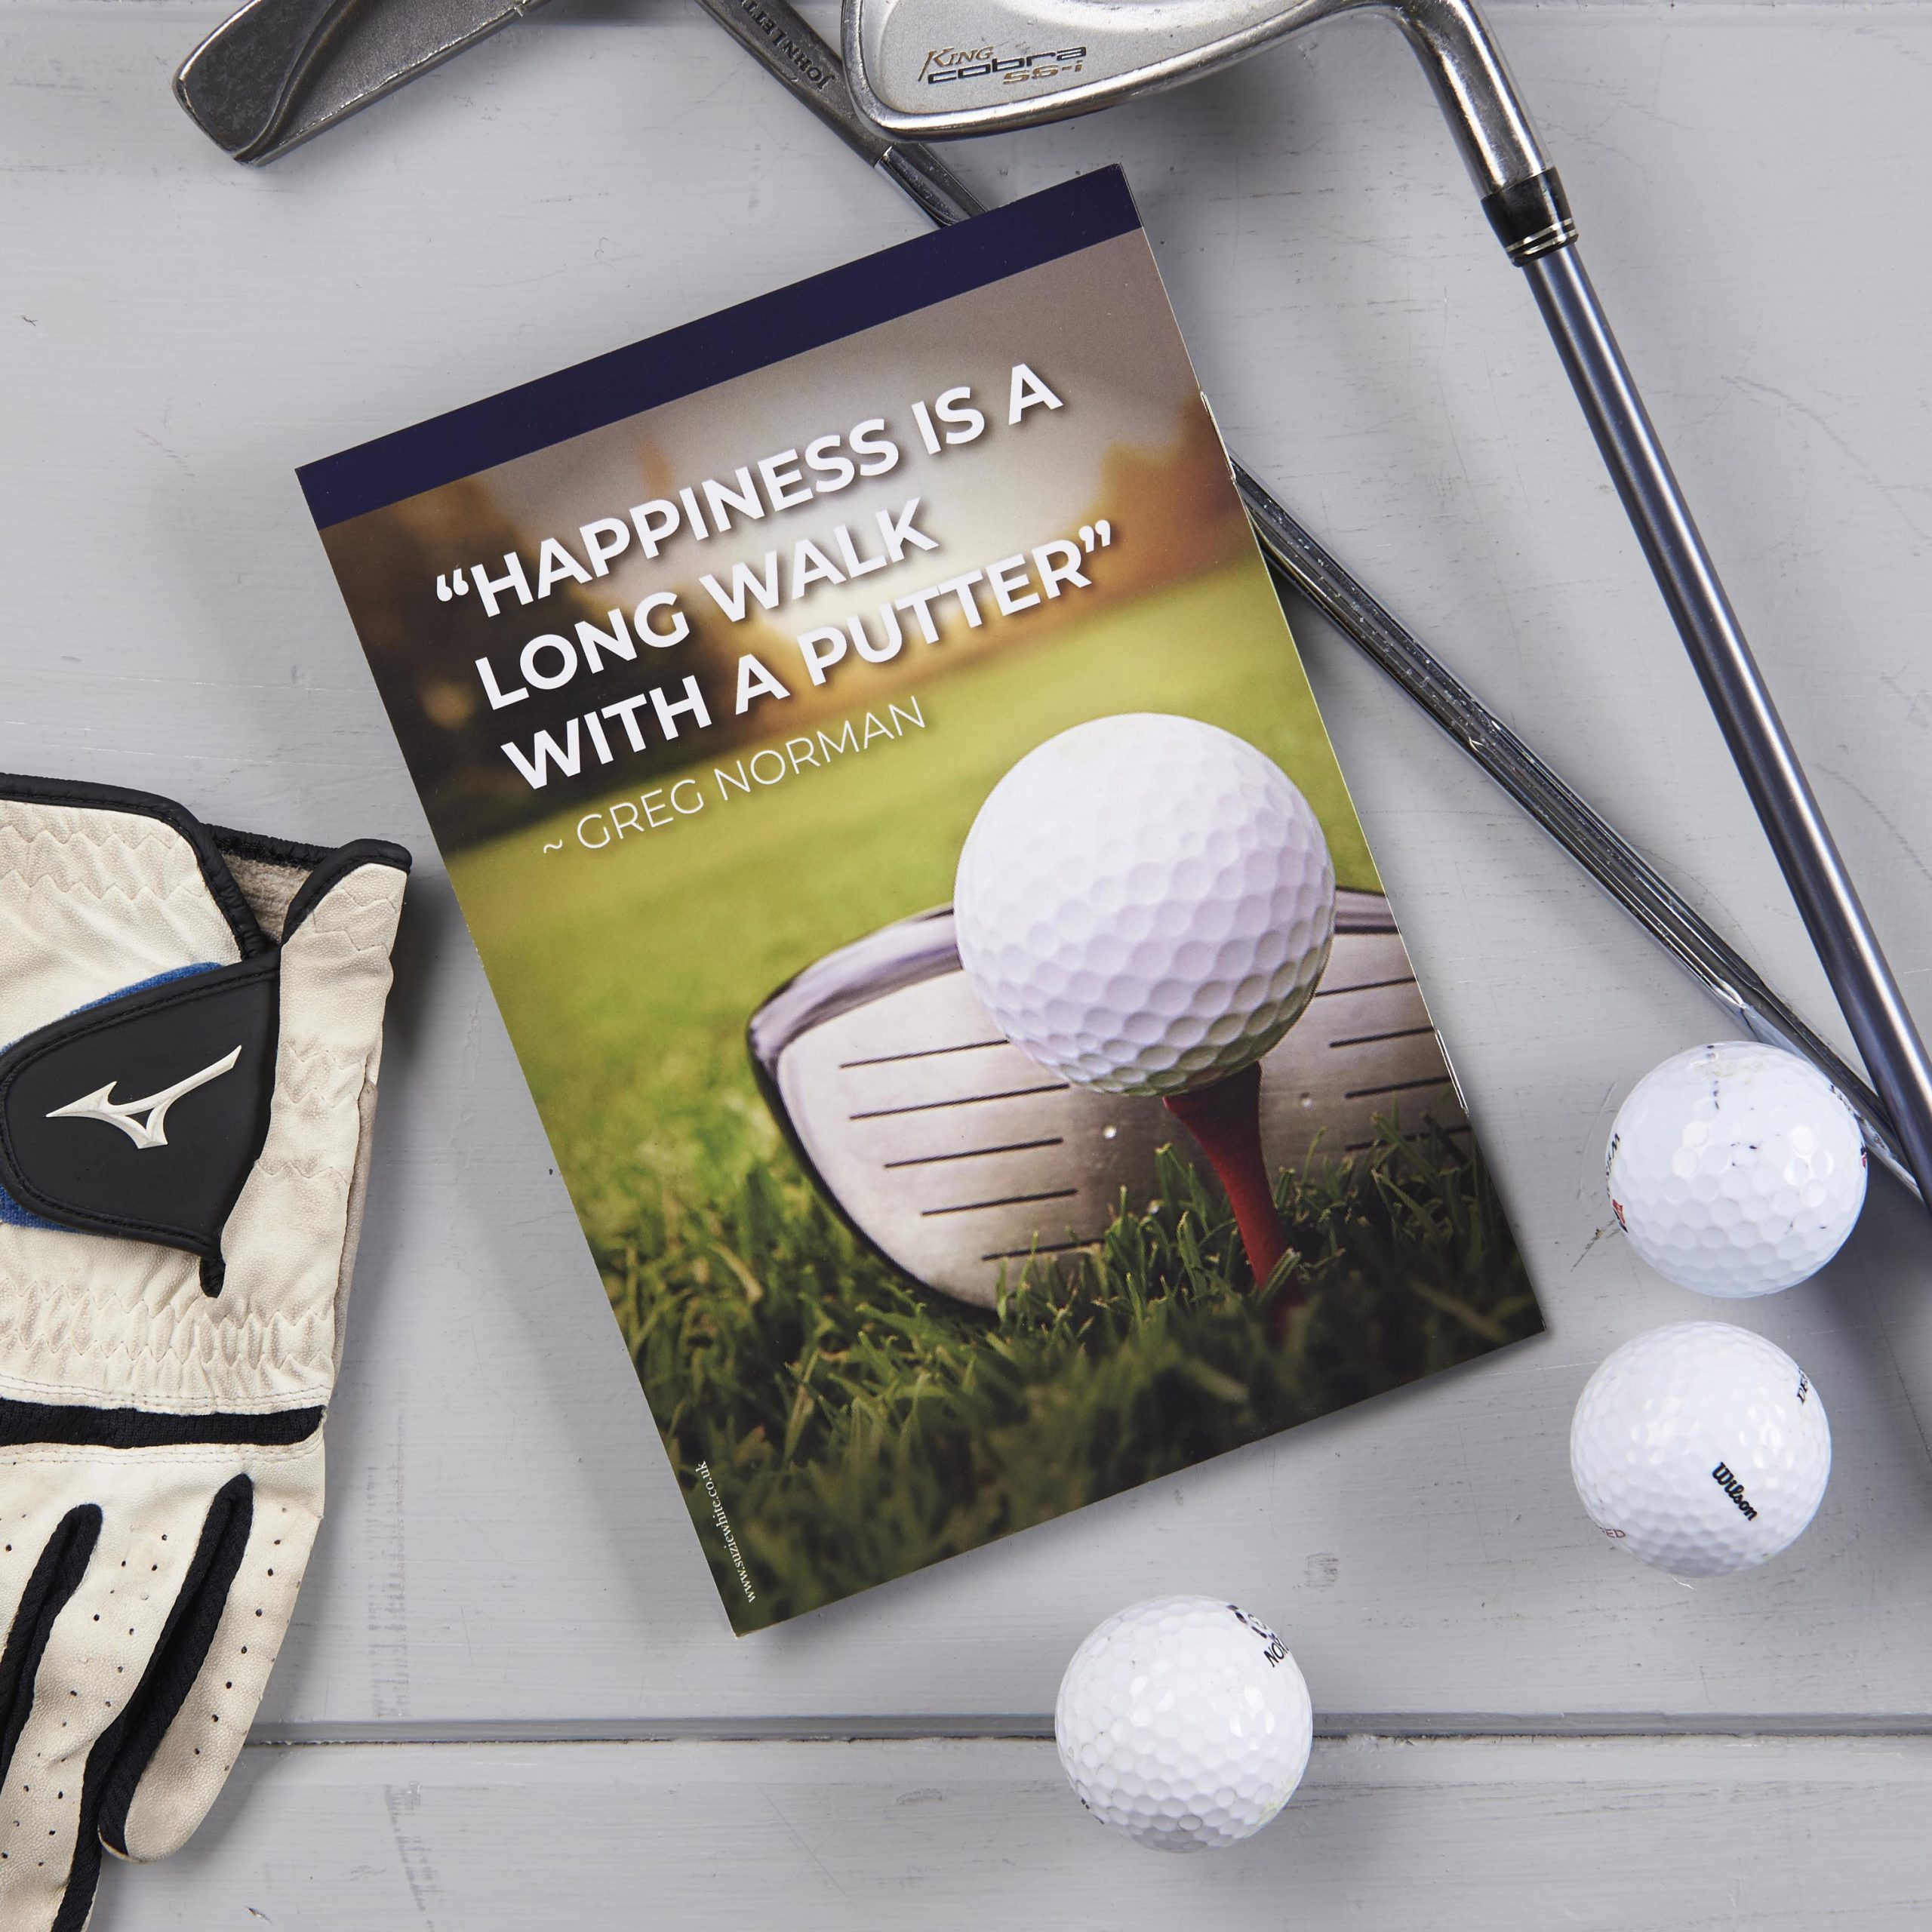 Golf theme funeral order of service, golf theme, golf magazine cover design, golf themed funeral